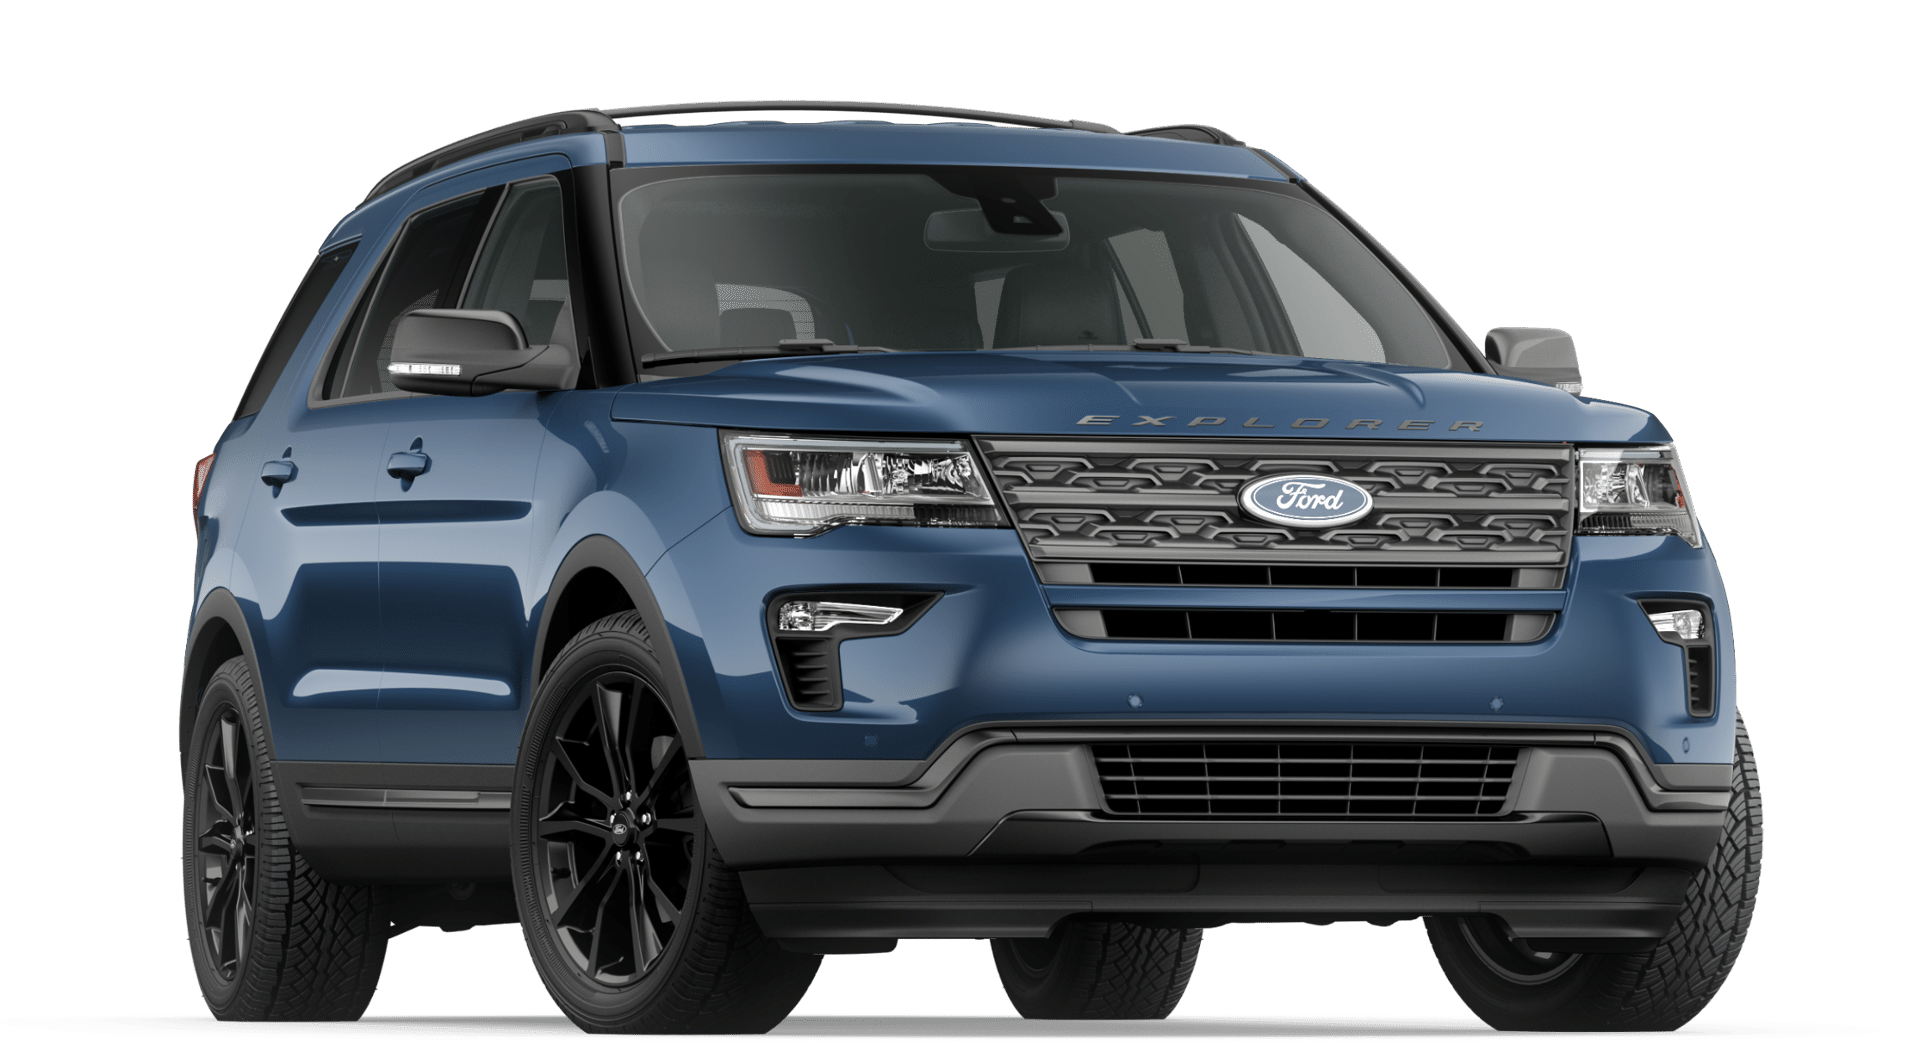 Exterior View Of 2019 Explorer 2020 Ford Explorer Ford Trucks Ford Explorer